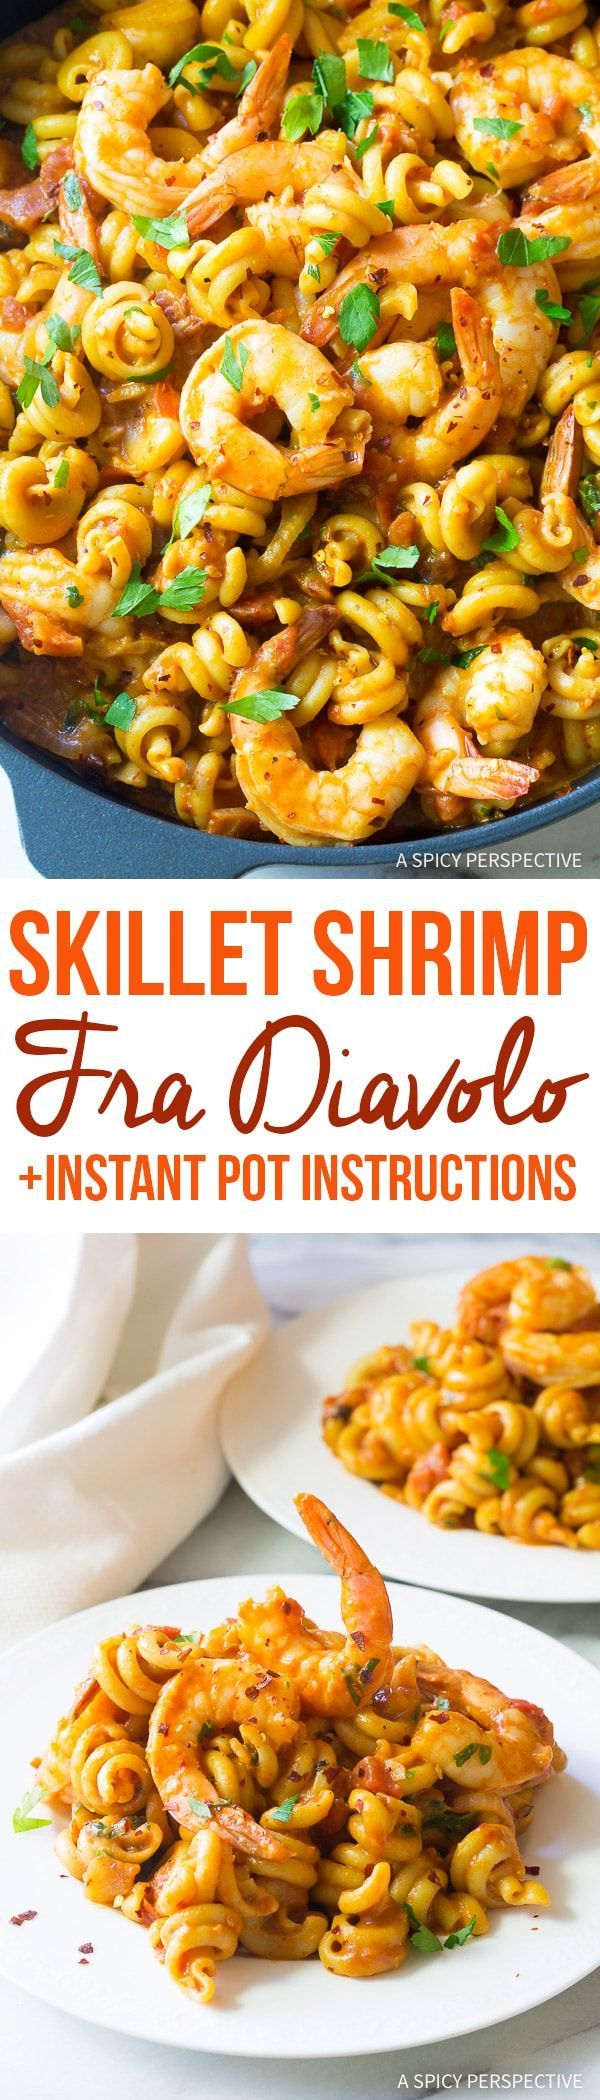 Skillet Shrimp Fra Diavolo Pasta Recipe: A bold and spicy one-pot meal combining seafood fra diavolo and pasta cooked right in the sauce for easy clean up! (Plus, Instant Pot Instructions!) via @spicyperspectiv